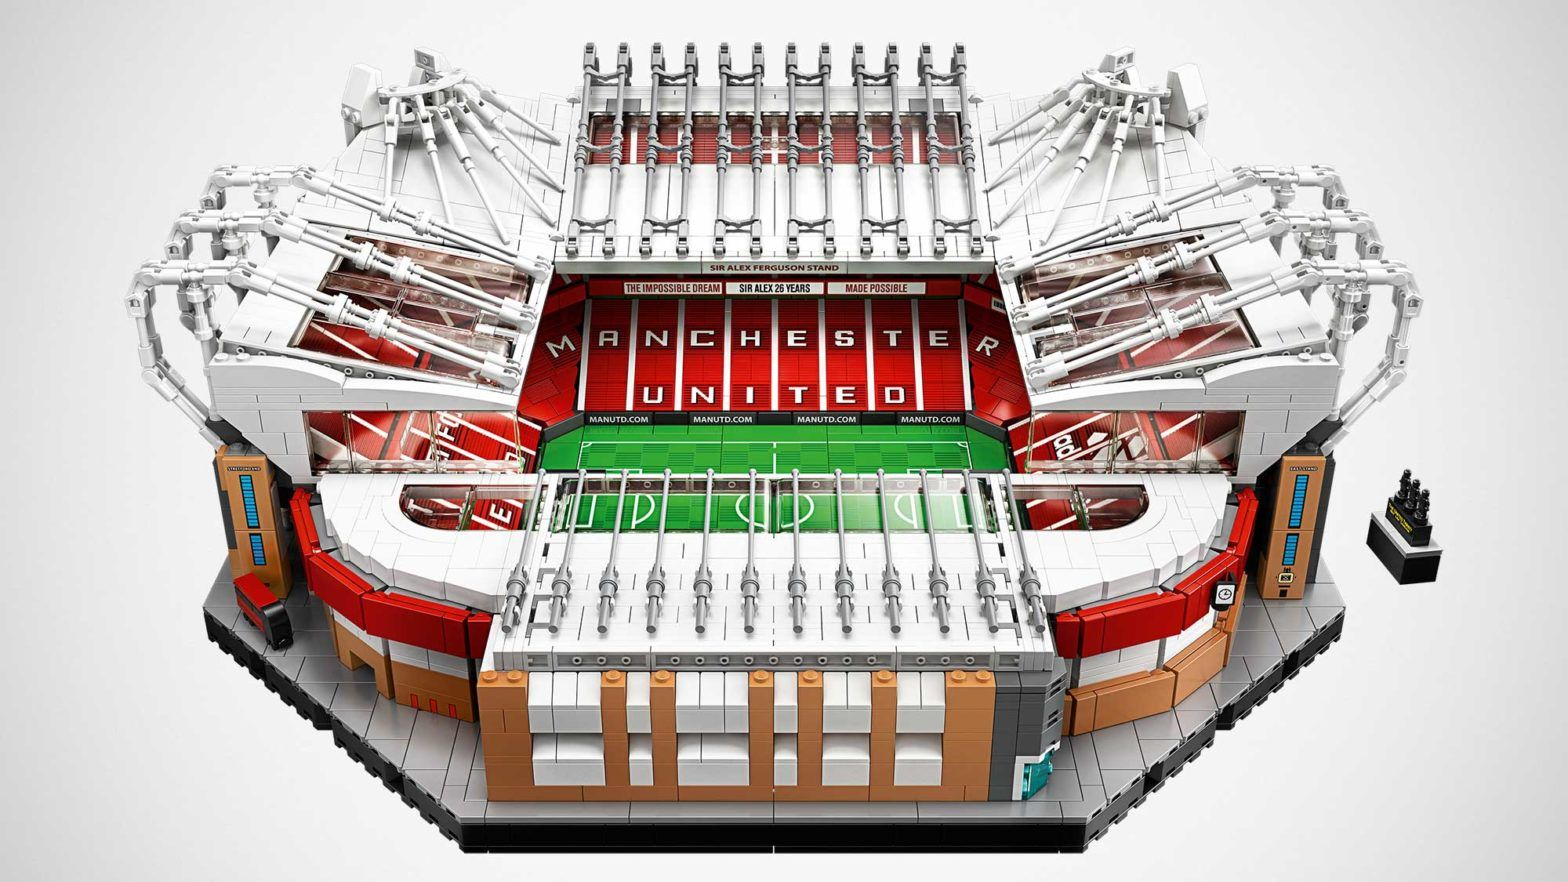 Lego Celebrates 110 Years Of Old Trafford With Lego Creator Expert Old Trafford Stadium Set In 2020 Manchester United Old Trafford Old Trafford Manchester United Gifts